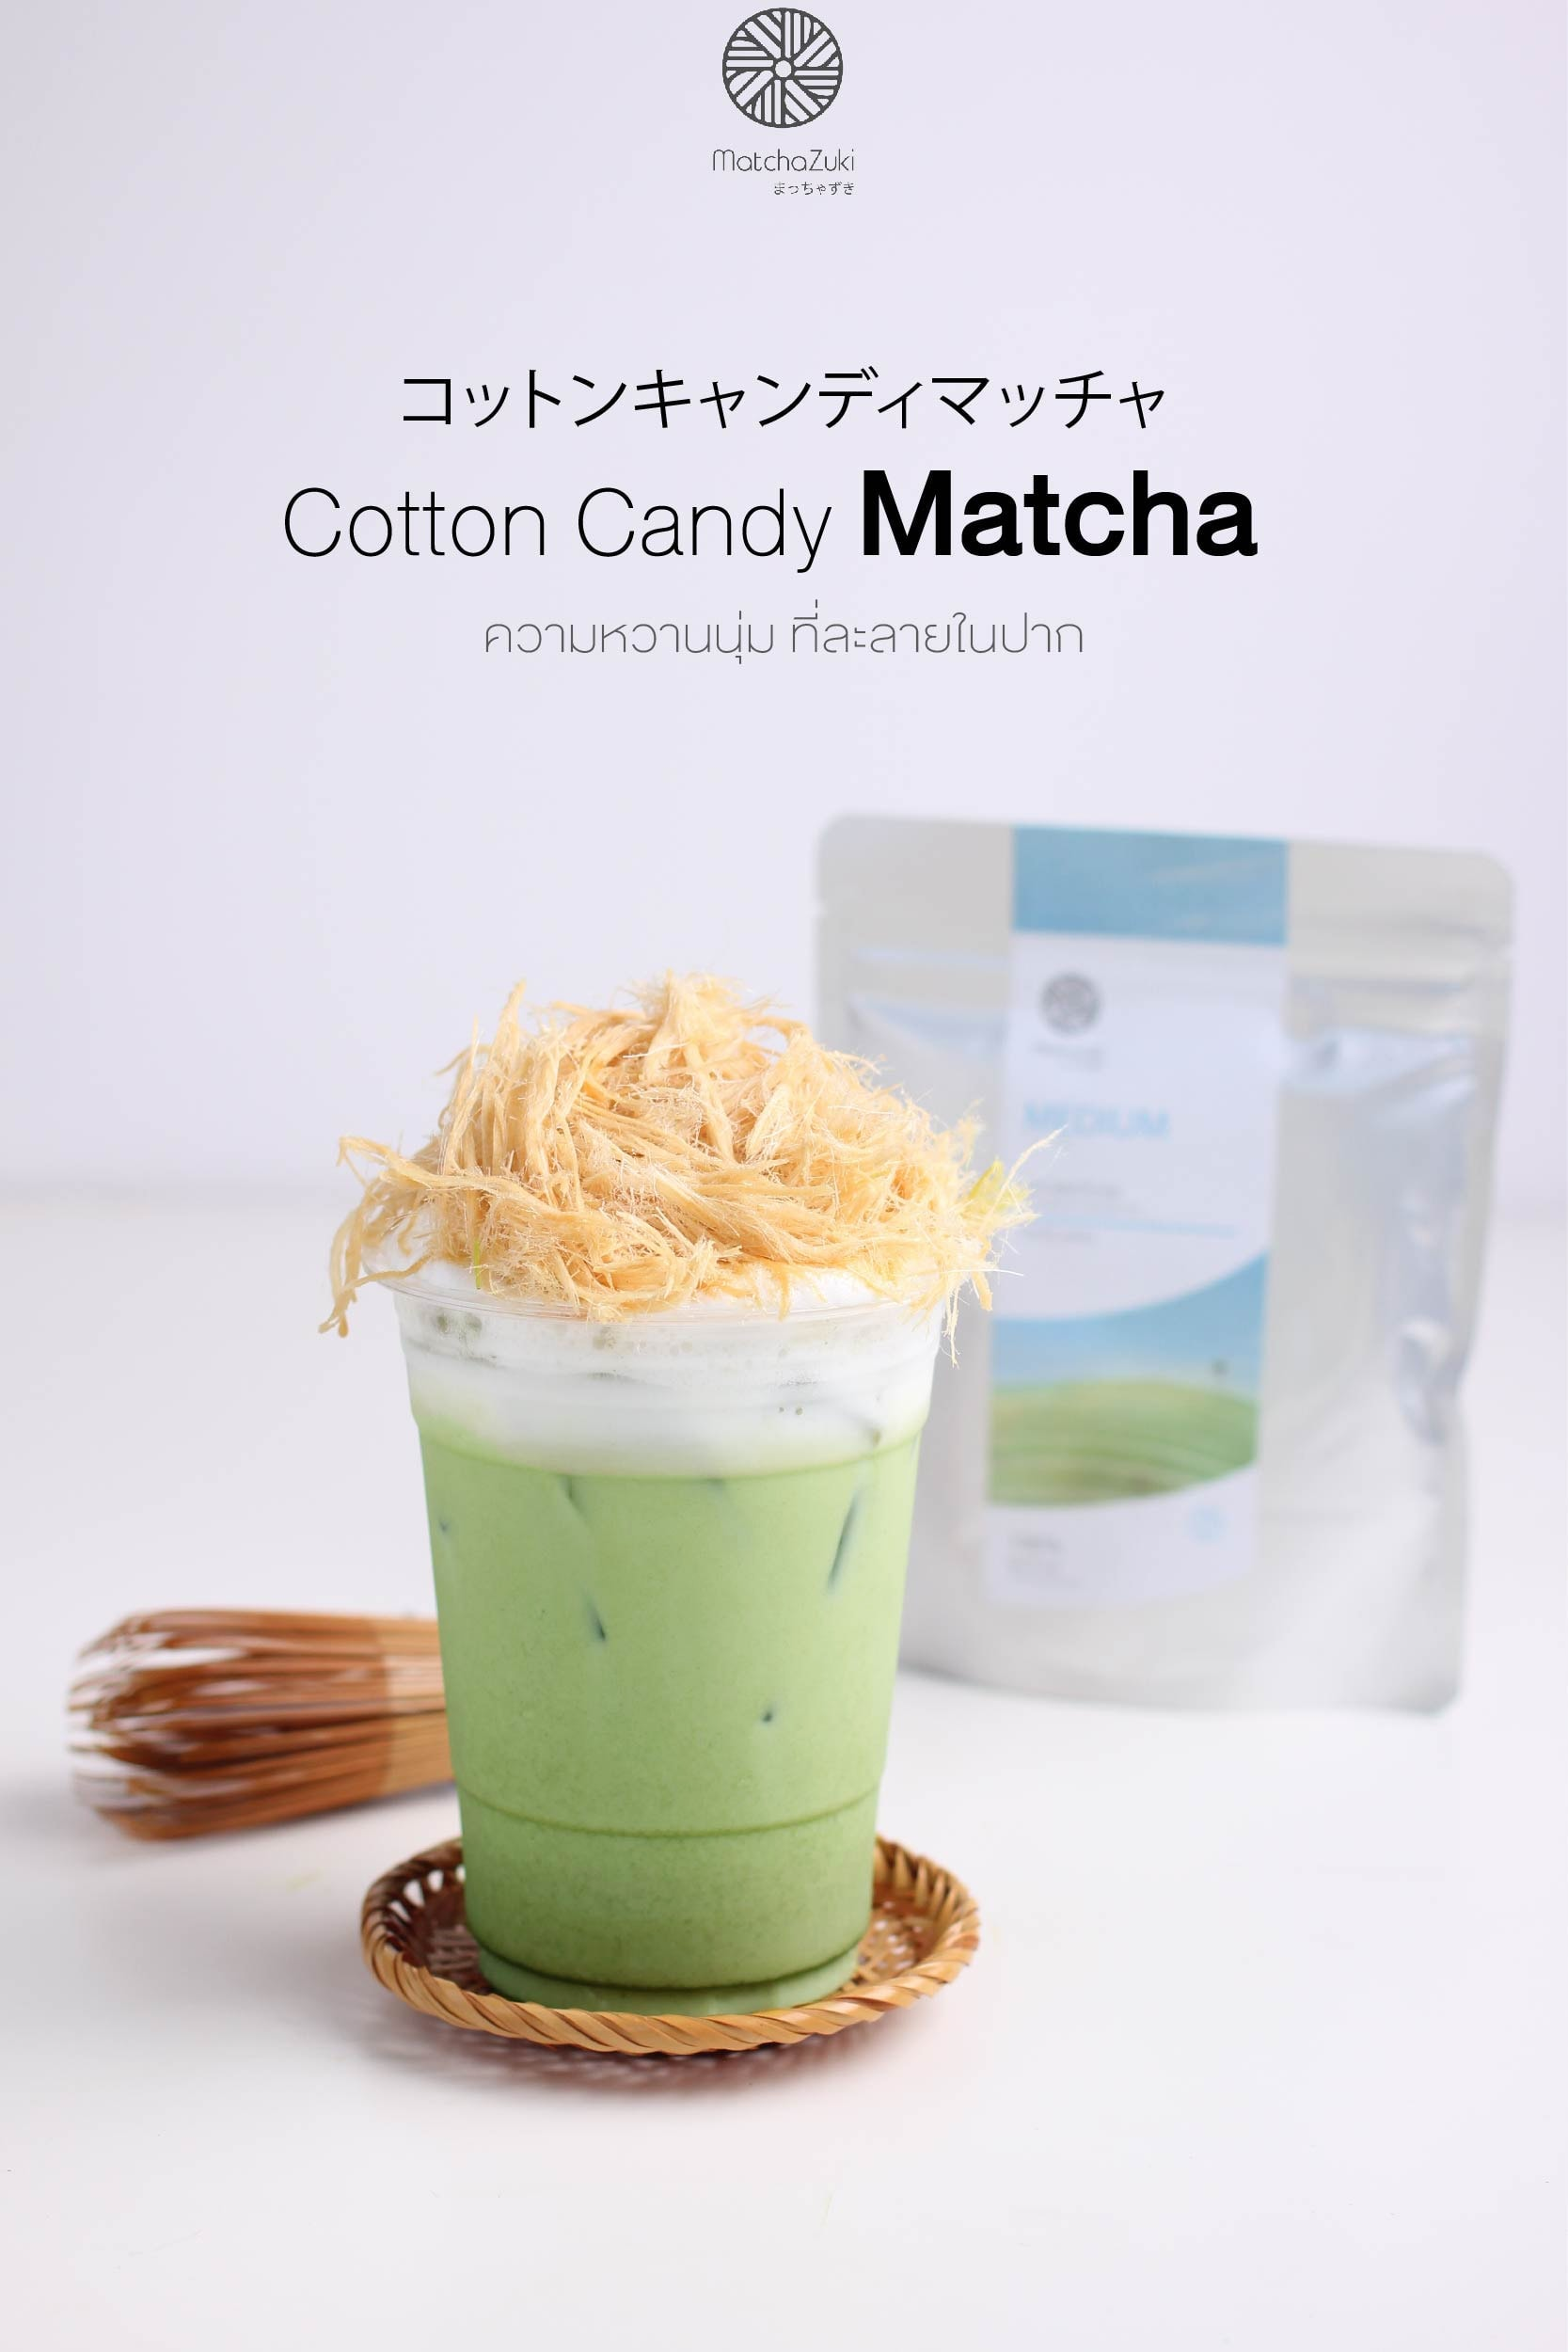 Cotton Candy Matcha